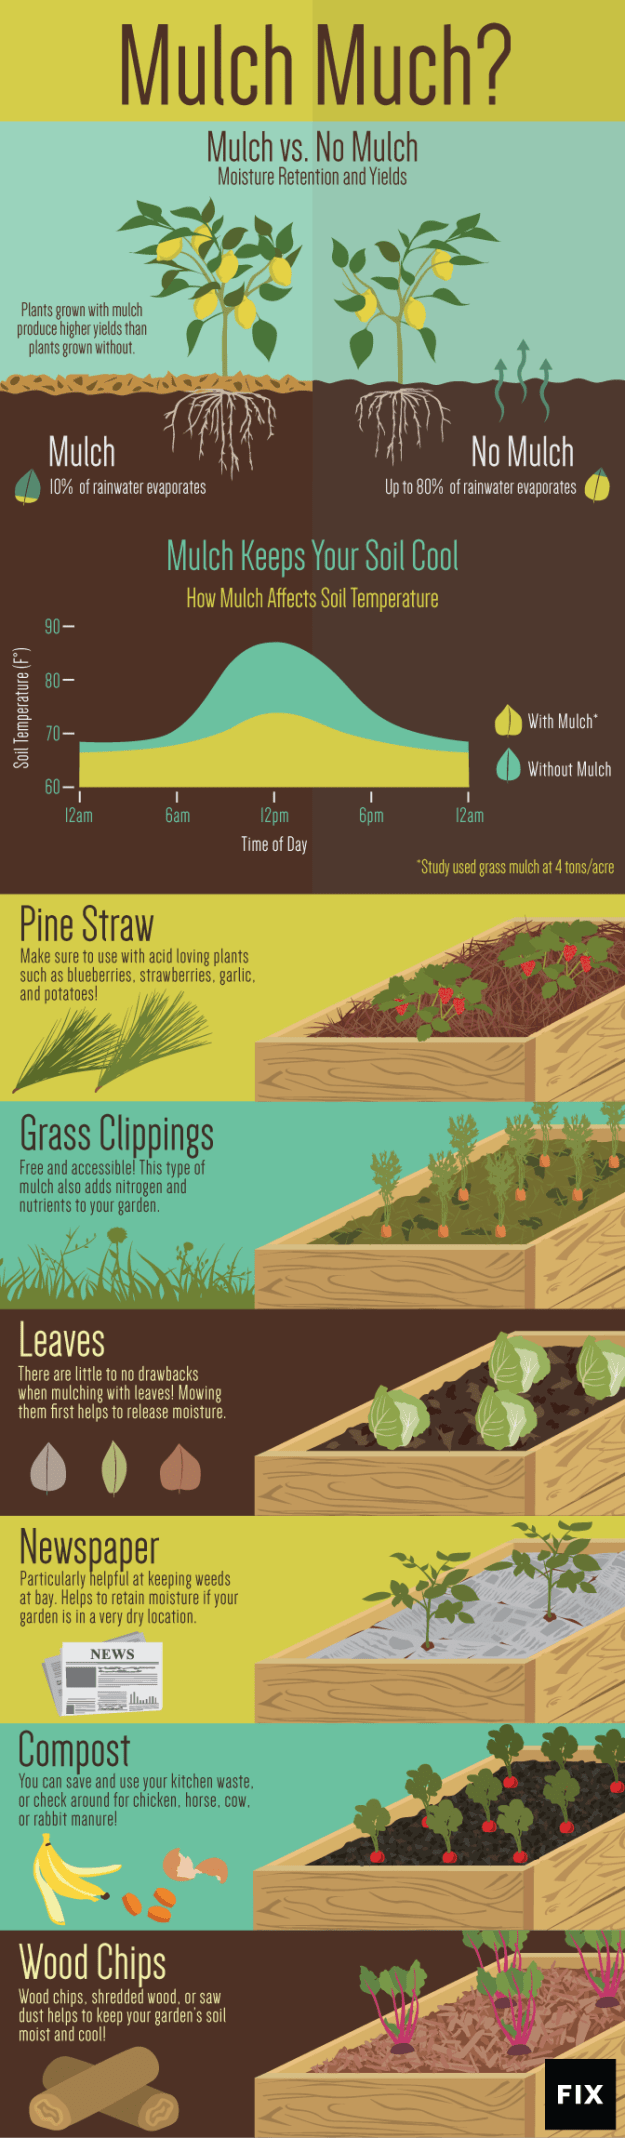 Leaves, grass clippings, newspaper: become a mulch master with this chart.